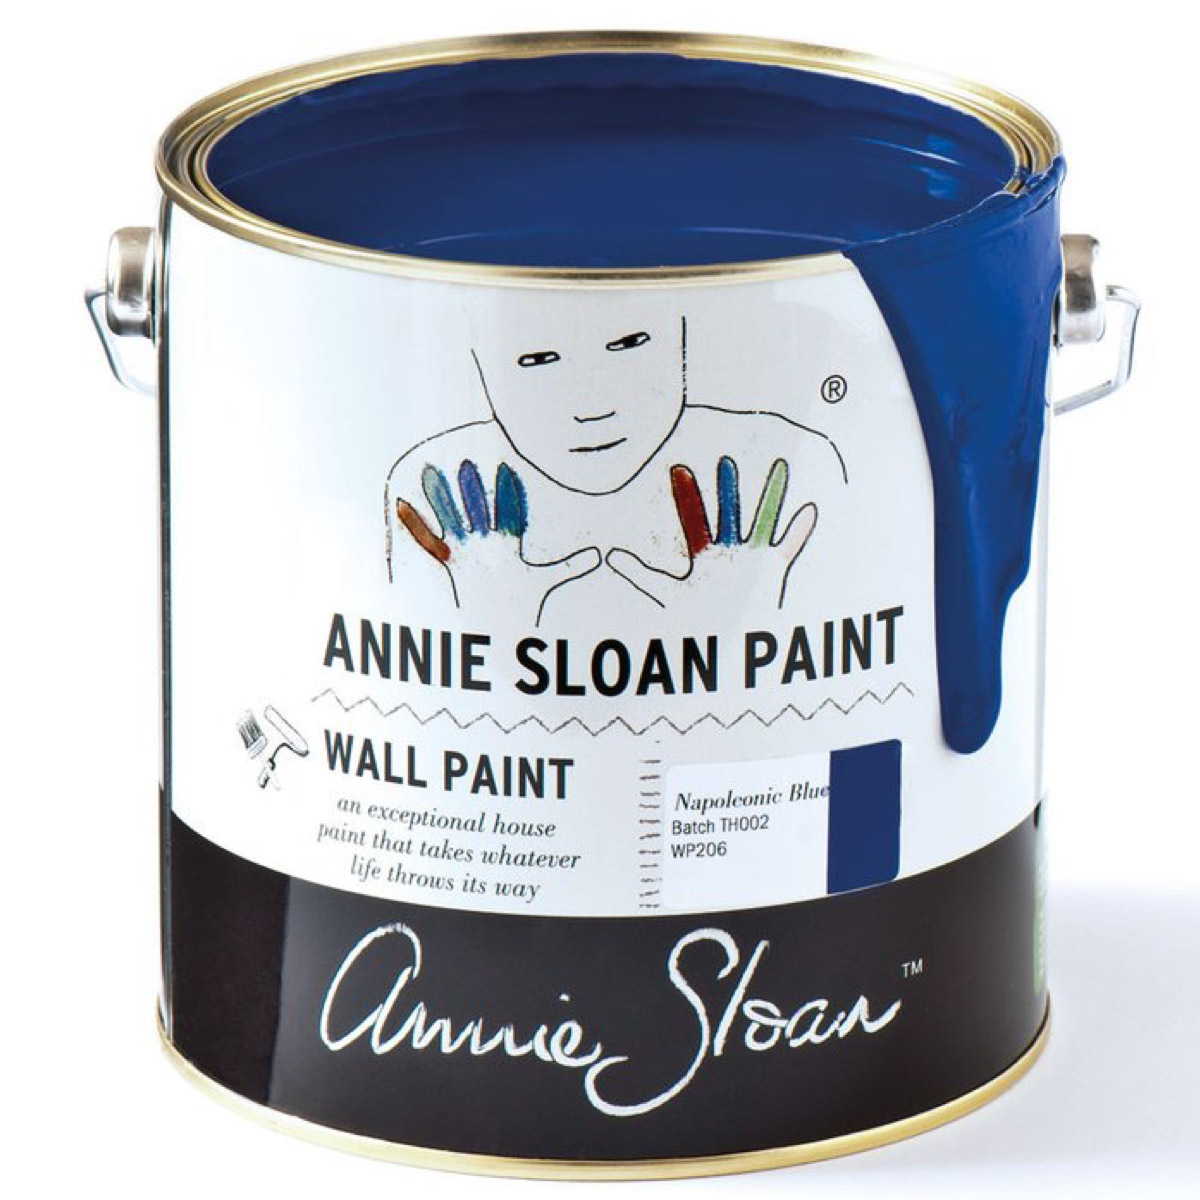 Napoleonic Blue Wall Paint